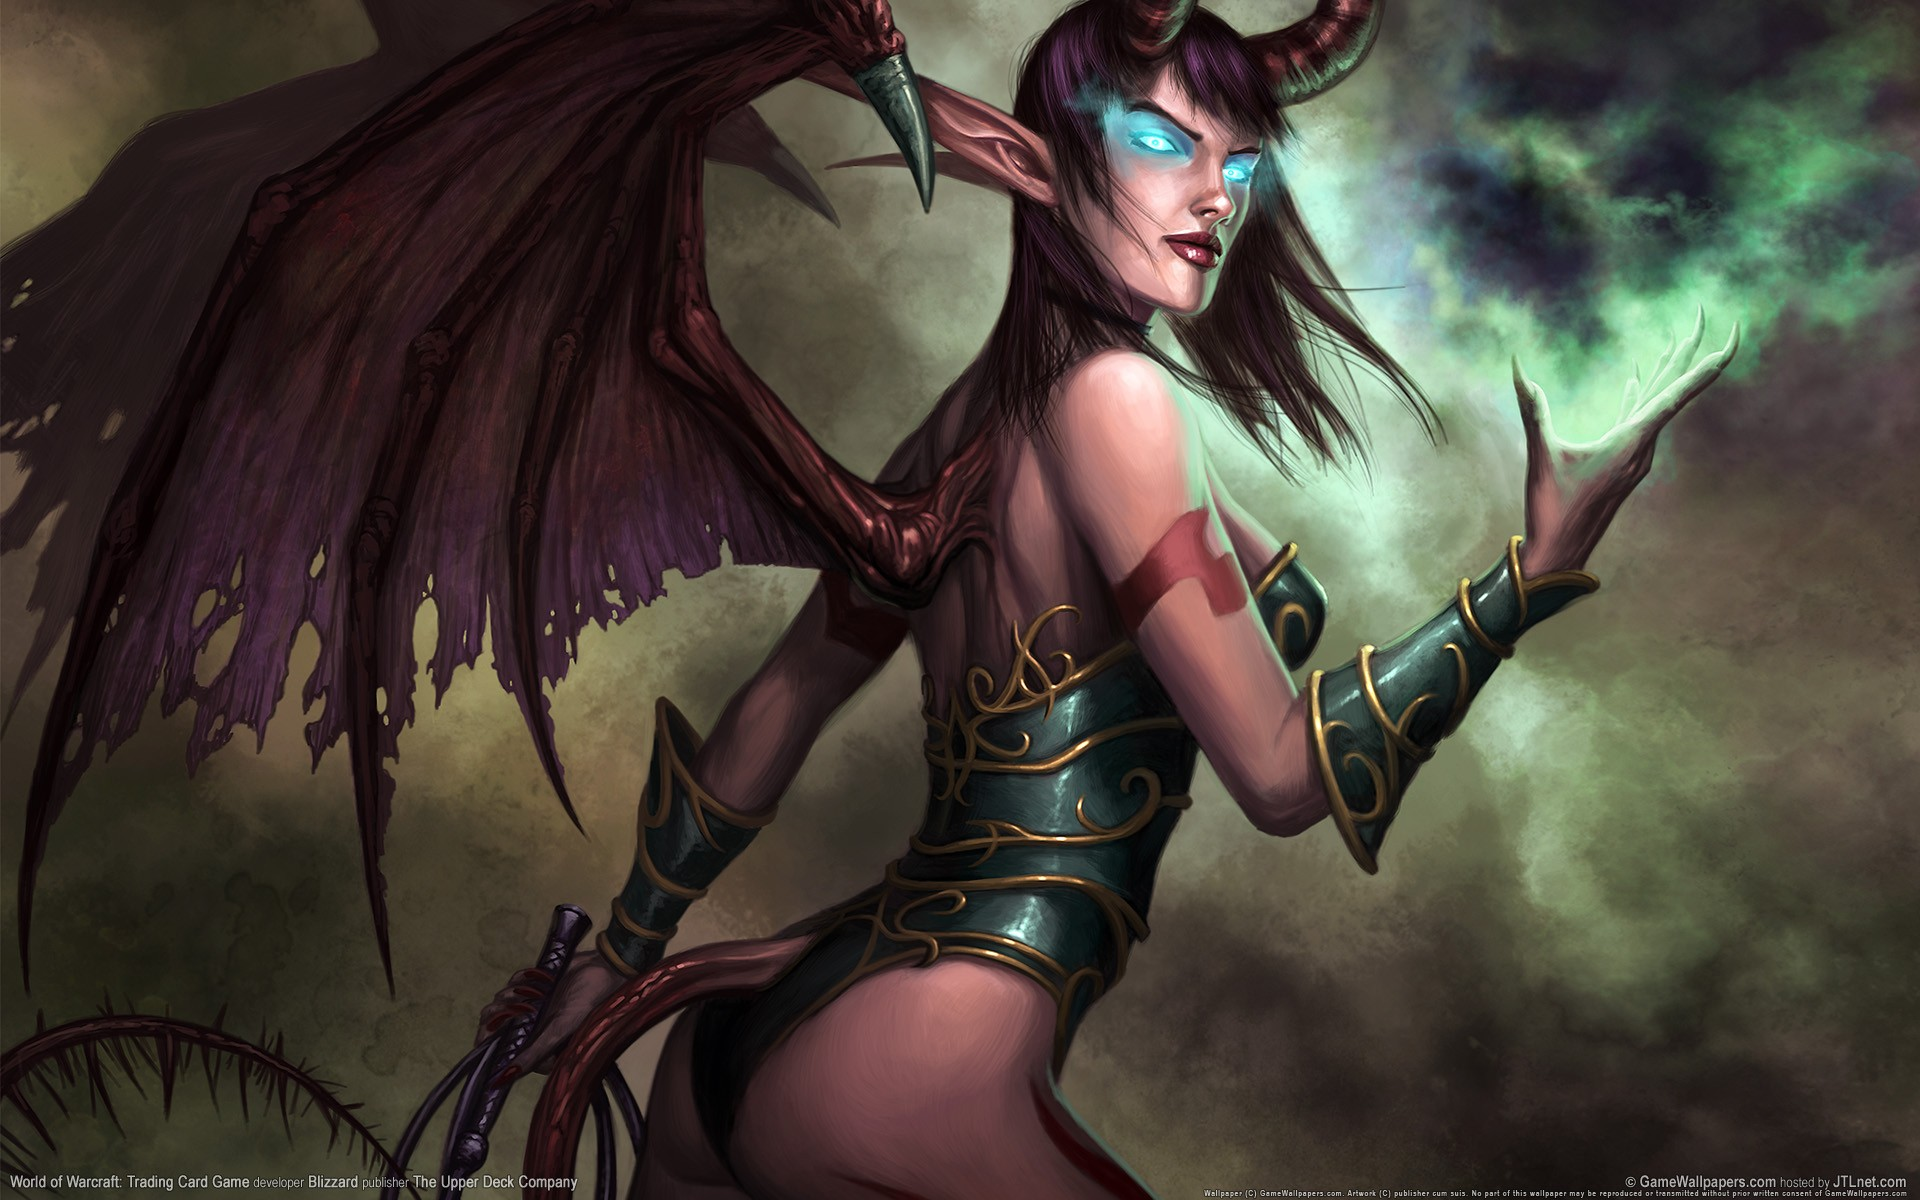 General 1920x1200 realistic World of Warcraft demon blue eyes succubus Trading Card Games demon girls wings cyan eyes glowing eyes horns pointy ears tail video game girls video game art